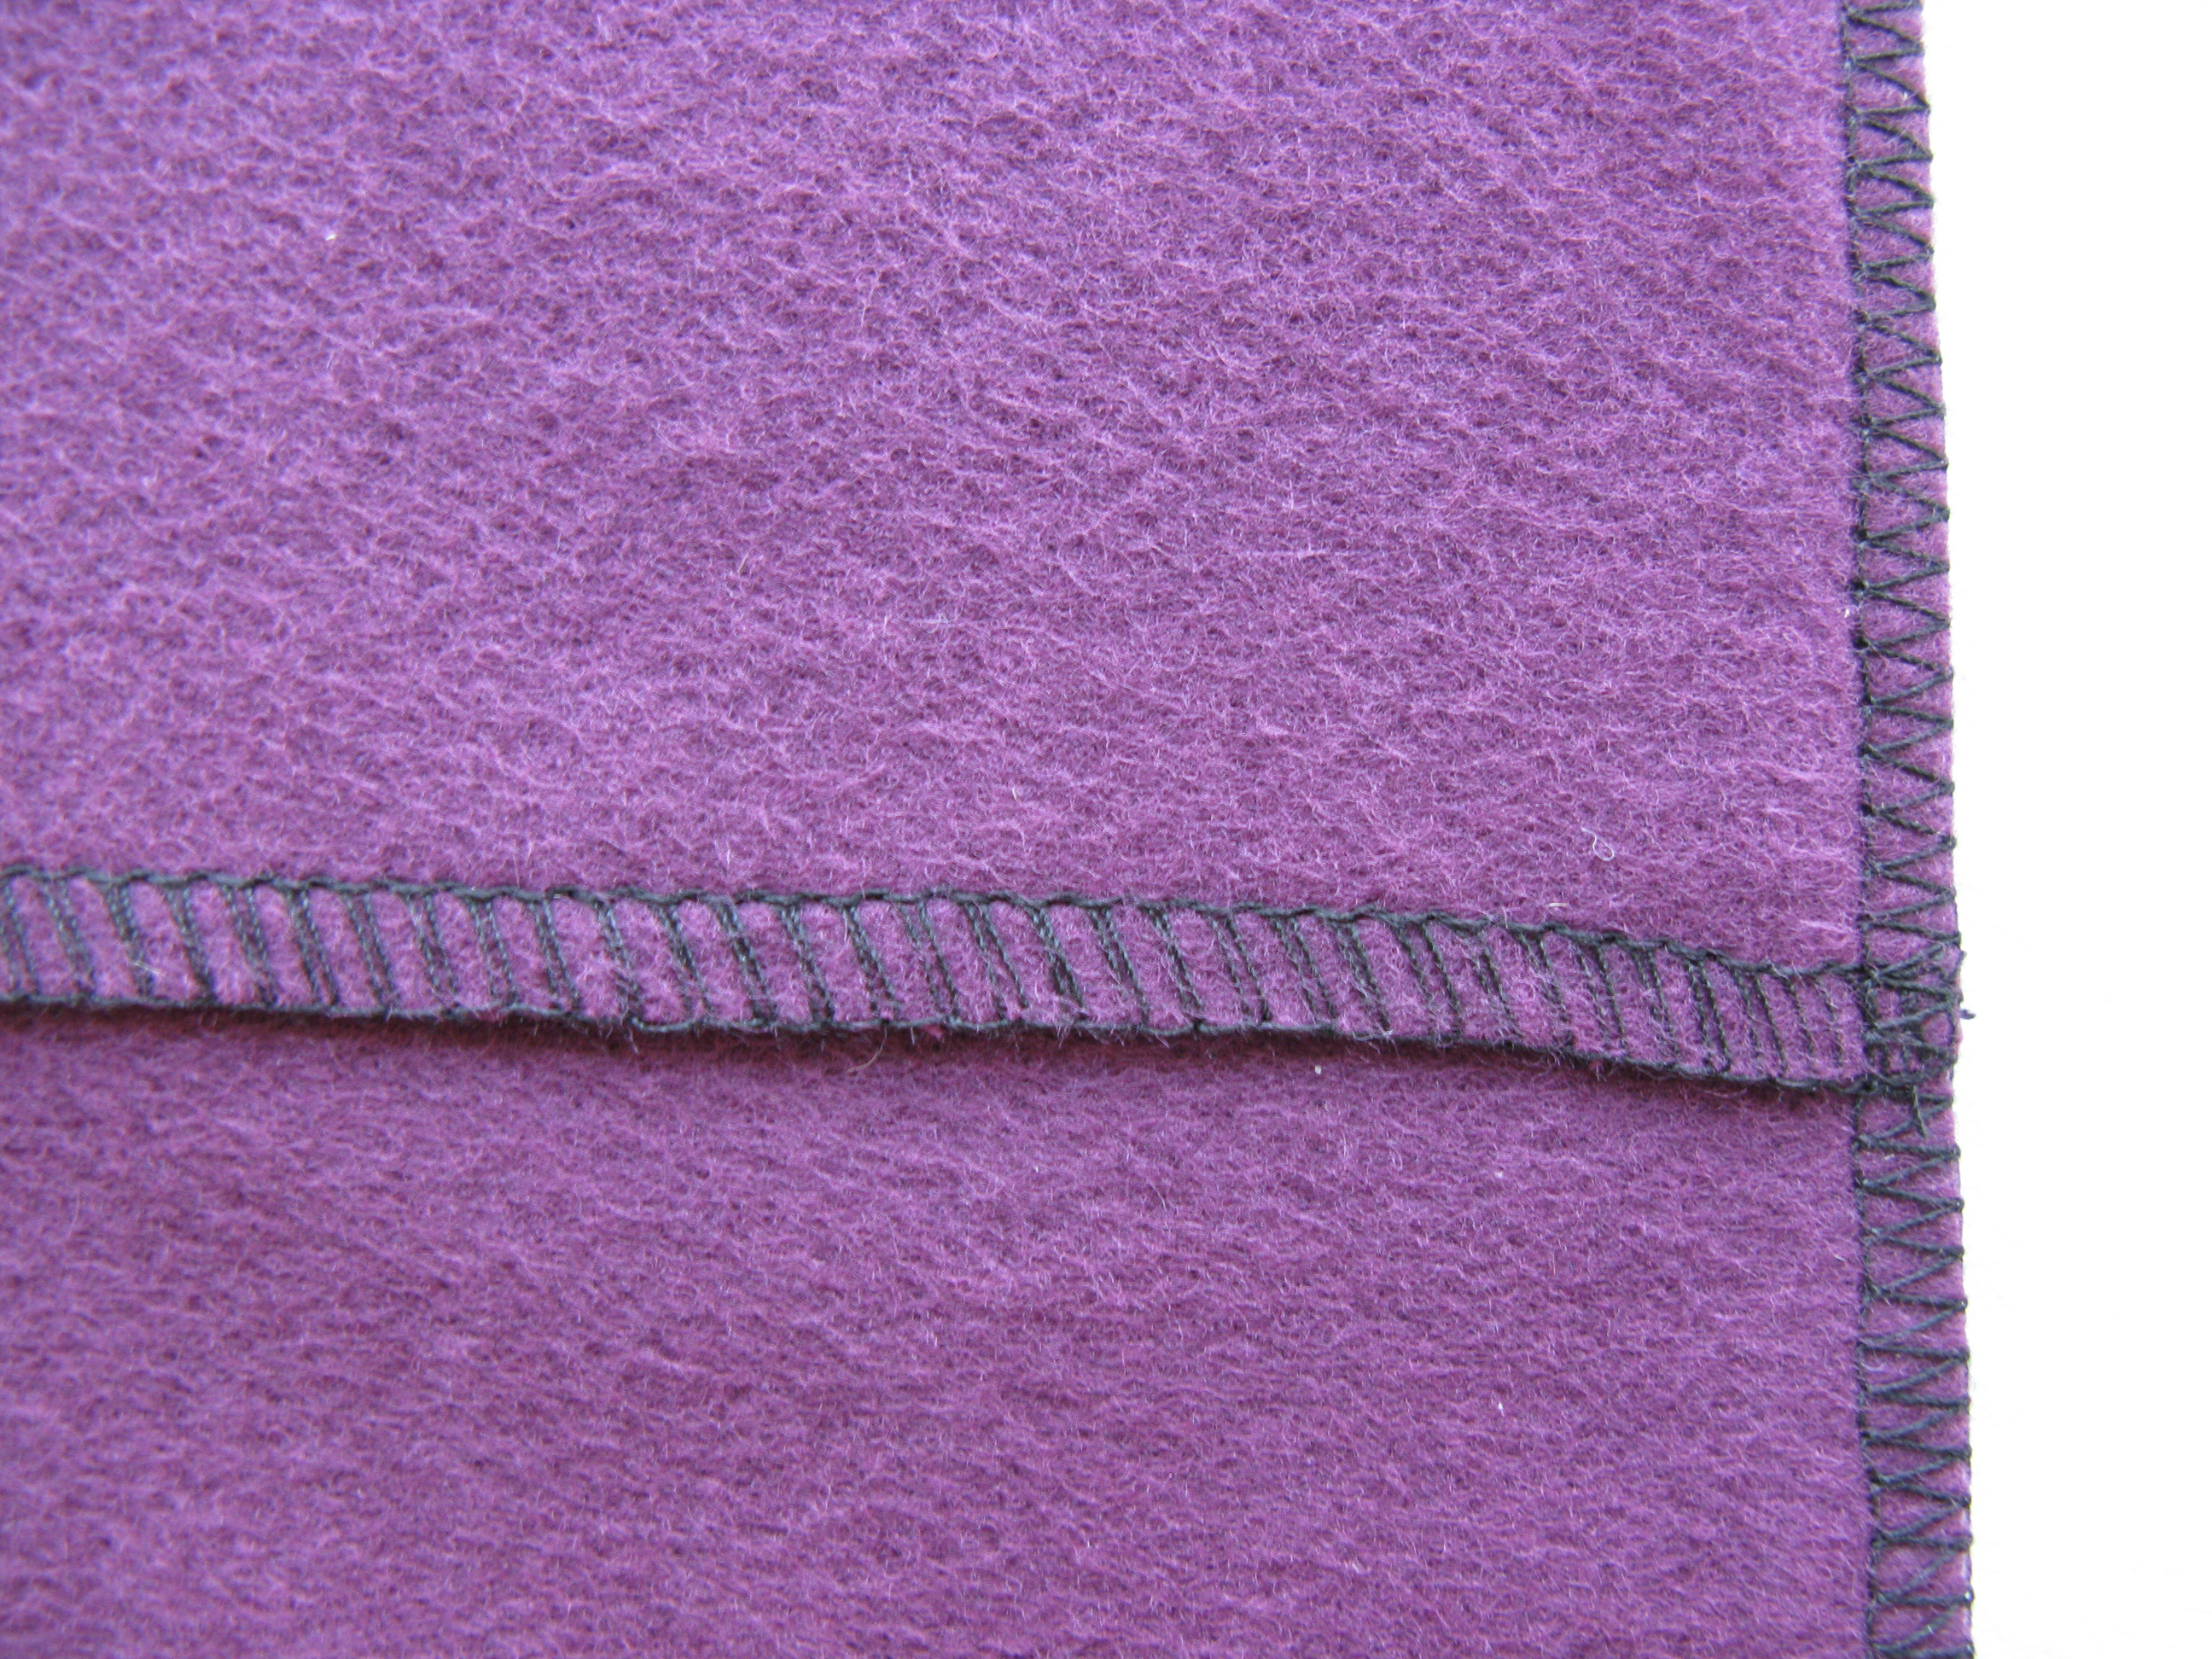 Thread made by serger machine